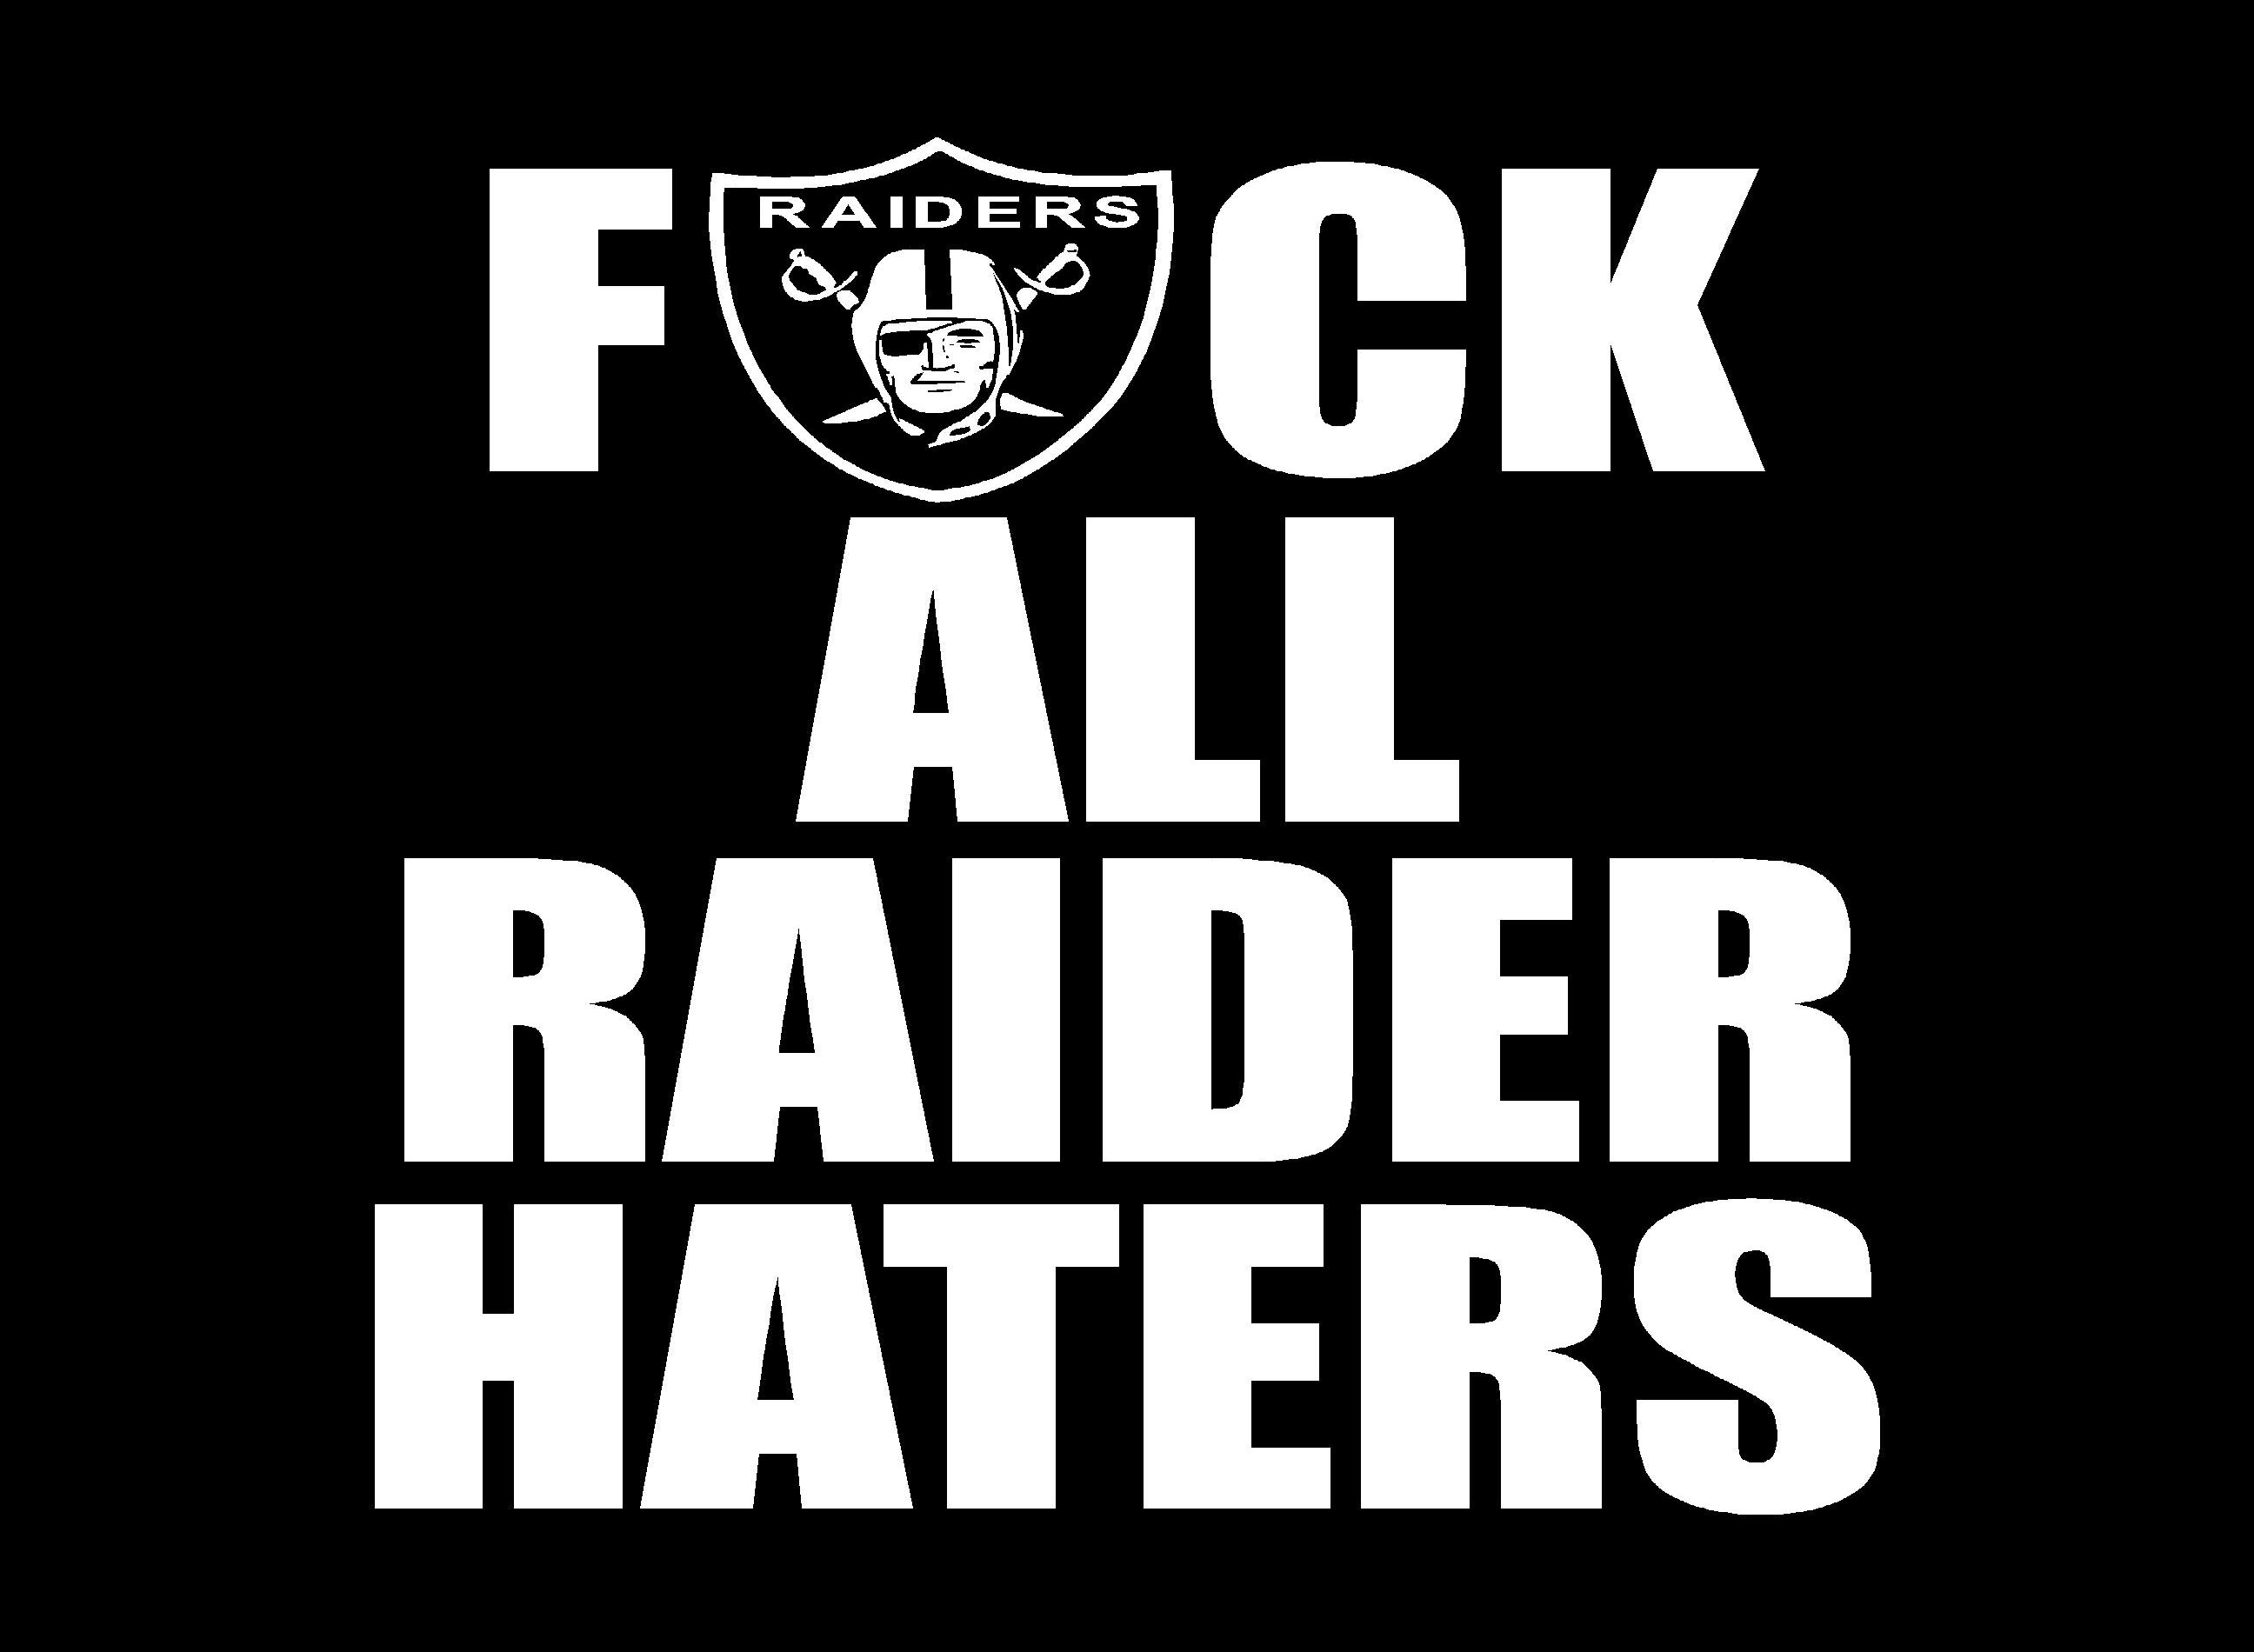 Oakland Raider Wallpaper submited images 2592x1900